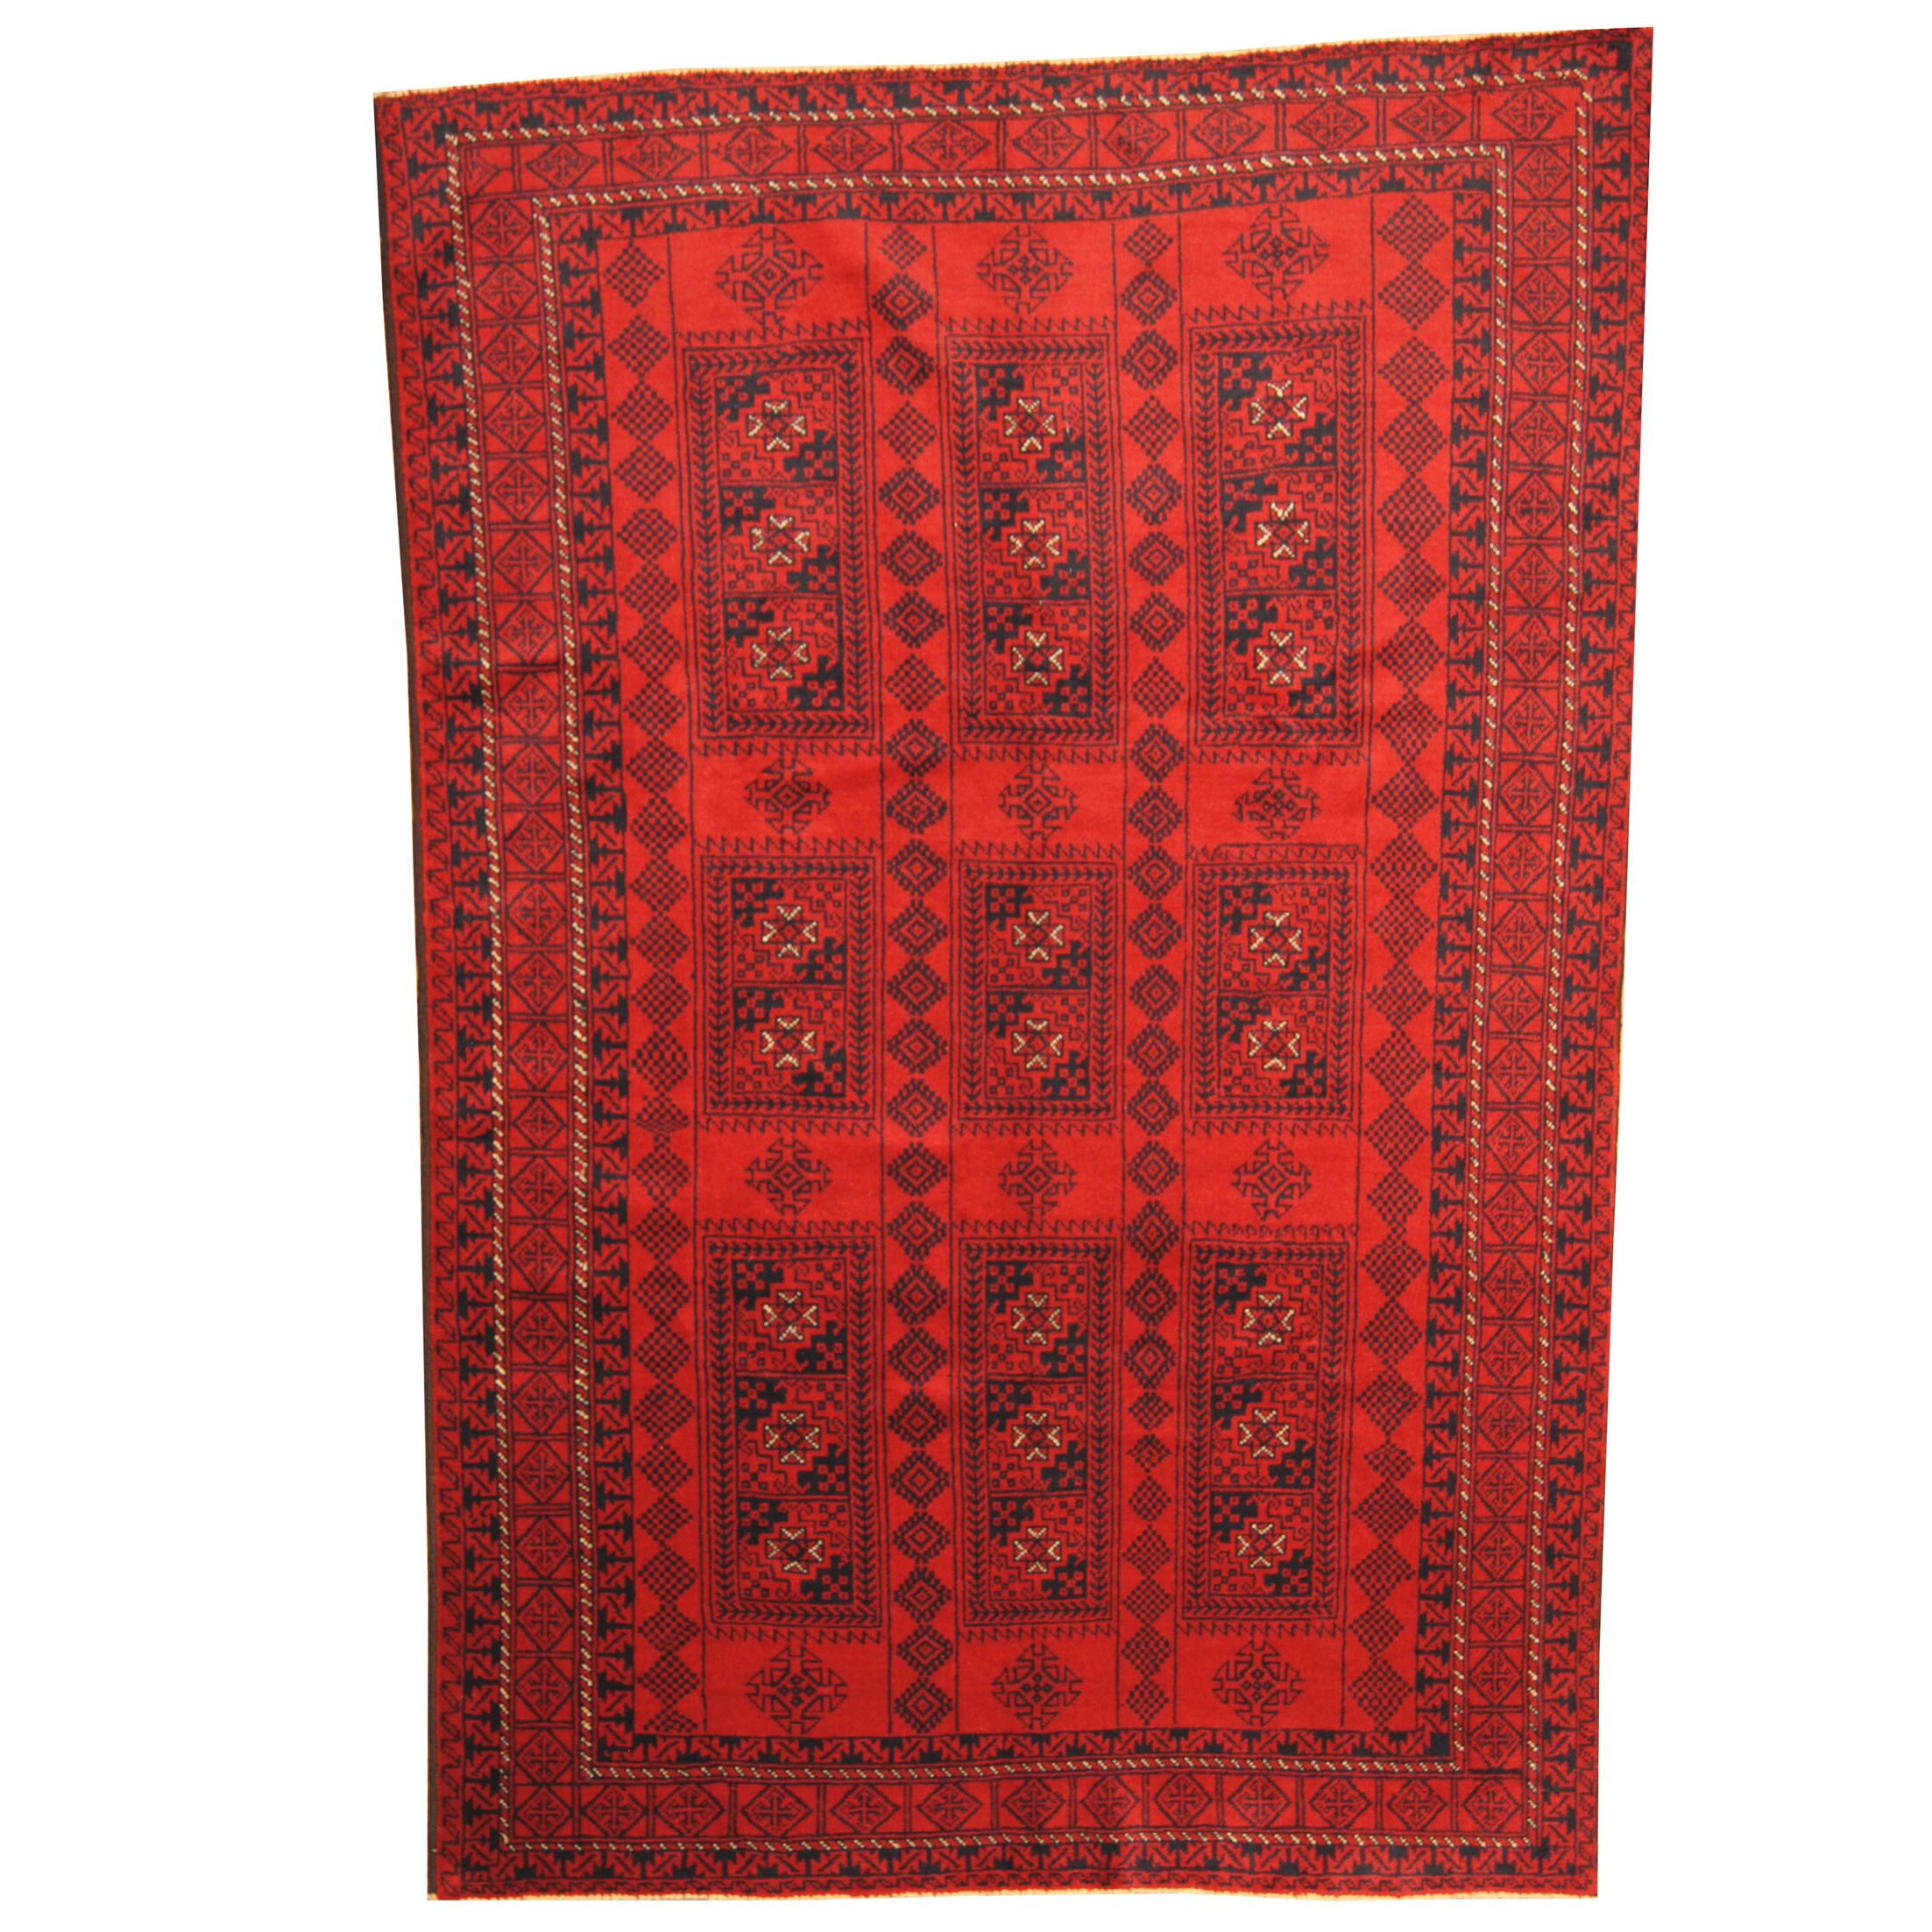 Prentice Hand-Knotted Red/ Navy Area Rug